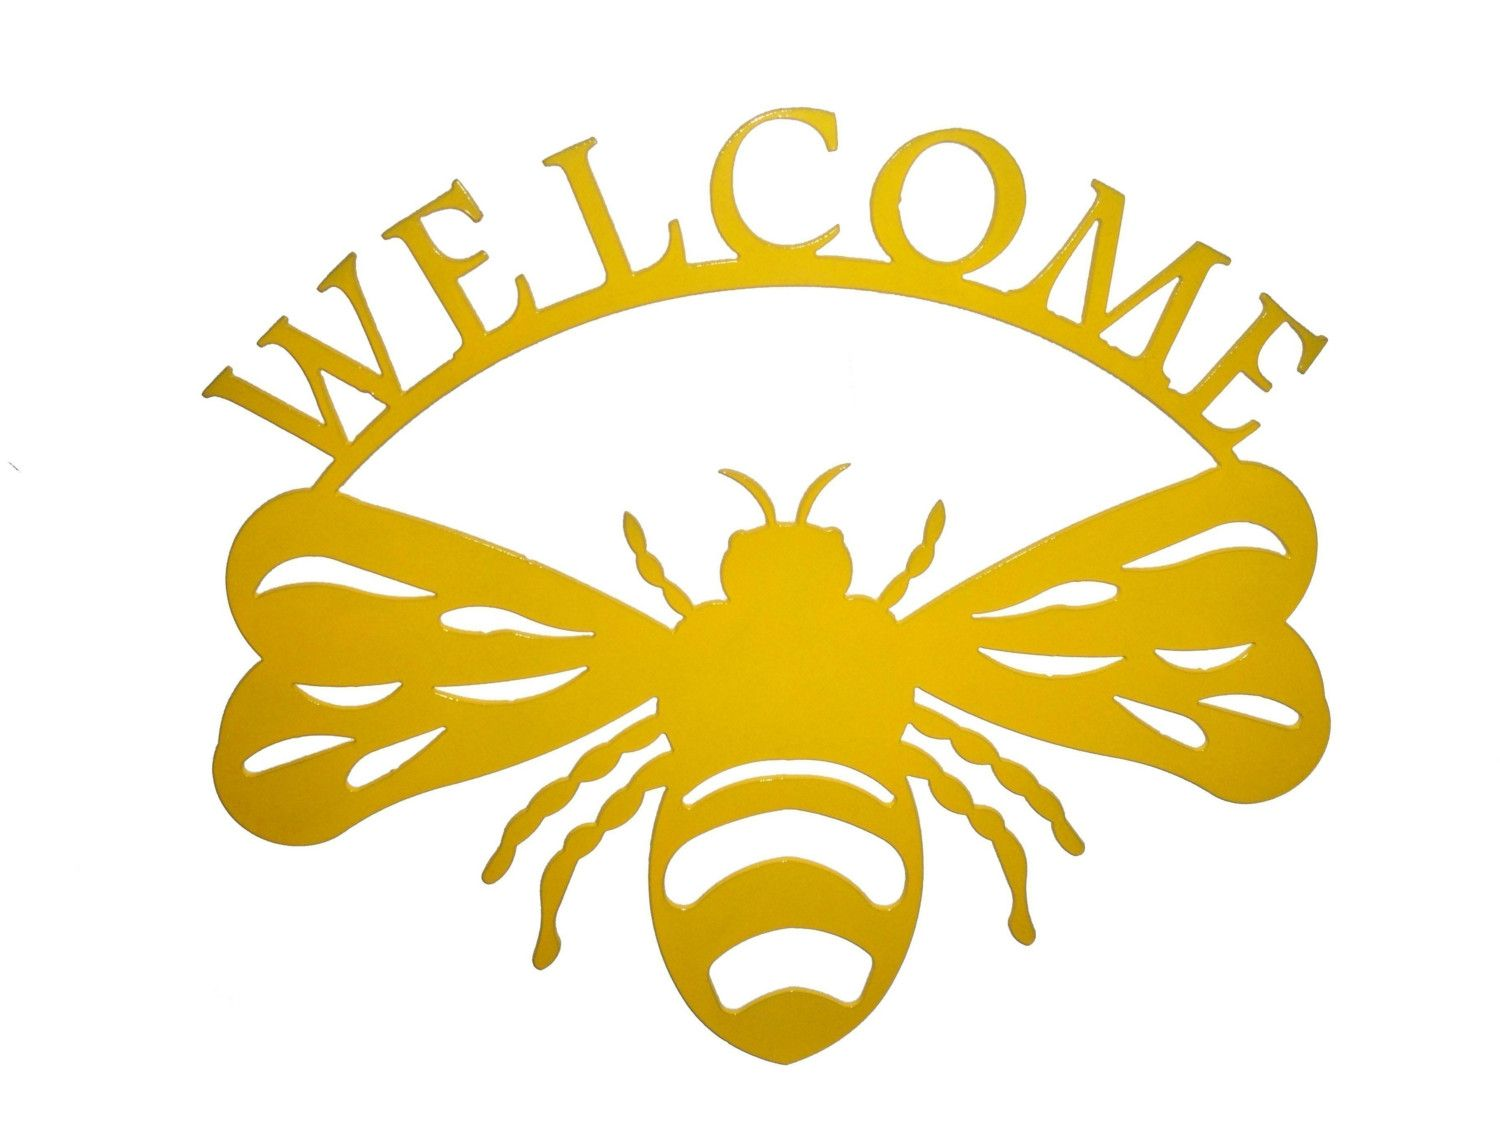 Bumble Bee Welcome Metal Wall Art (N) | Bee drawing, Bumble bees and ...